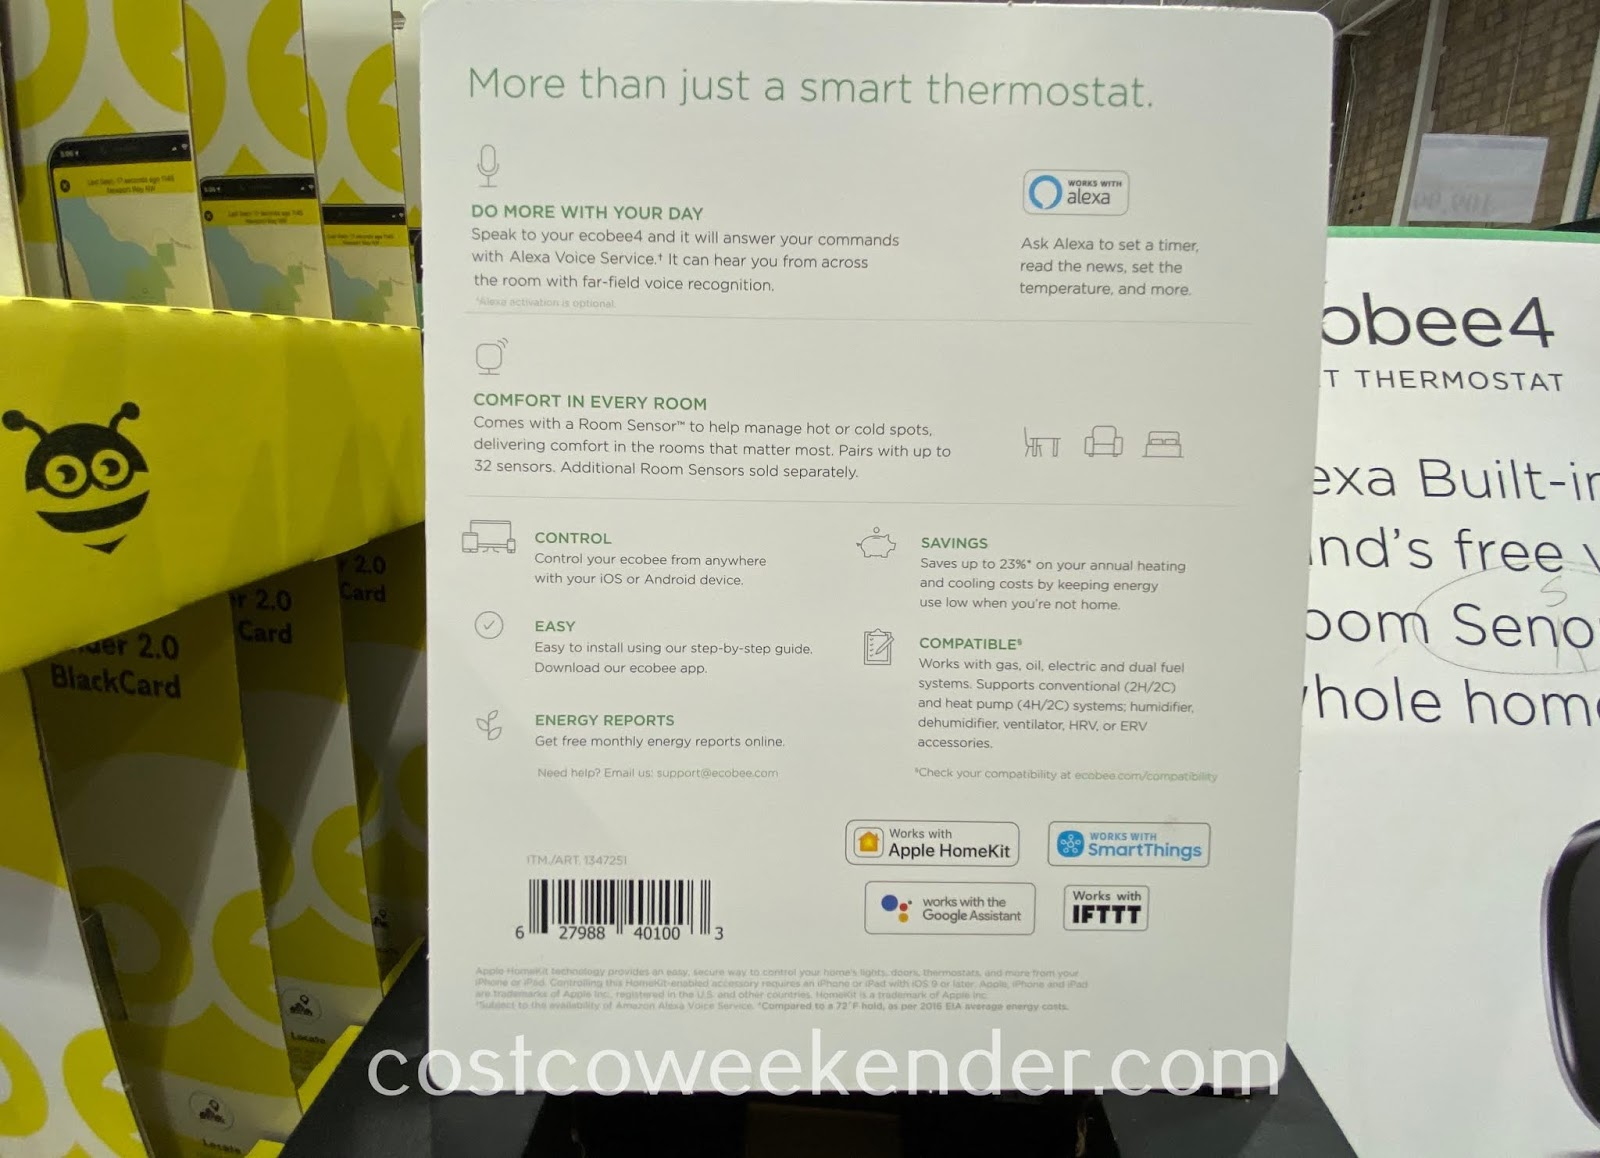 Costco 1347251 - ecobee4 Smart Thermostat: great for any home